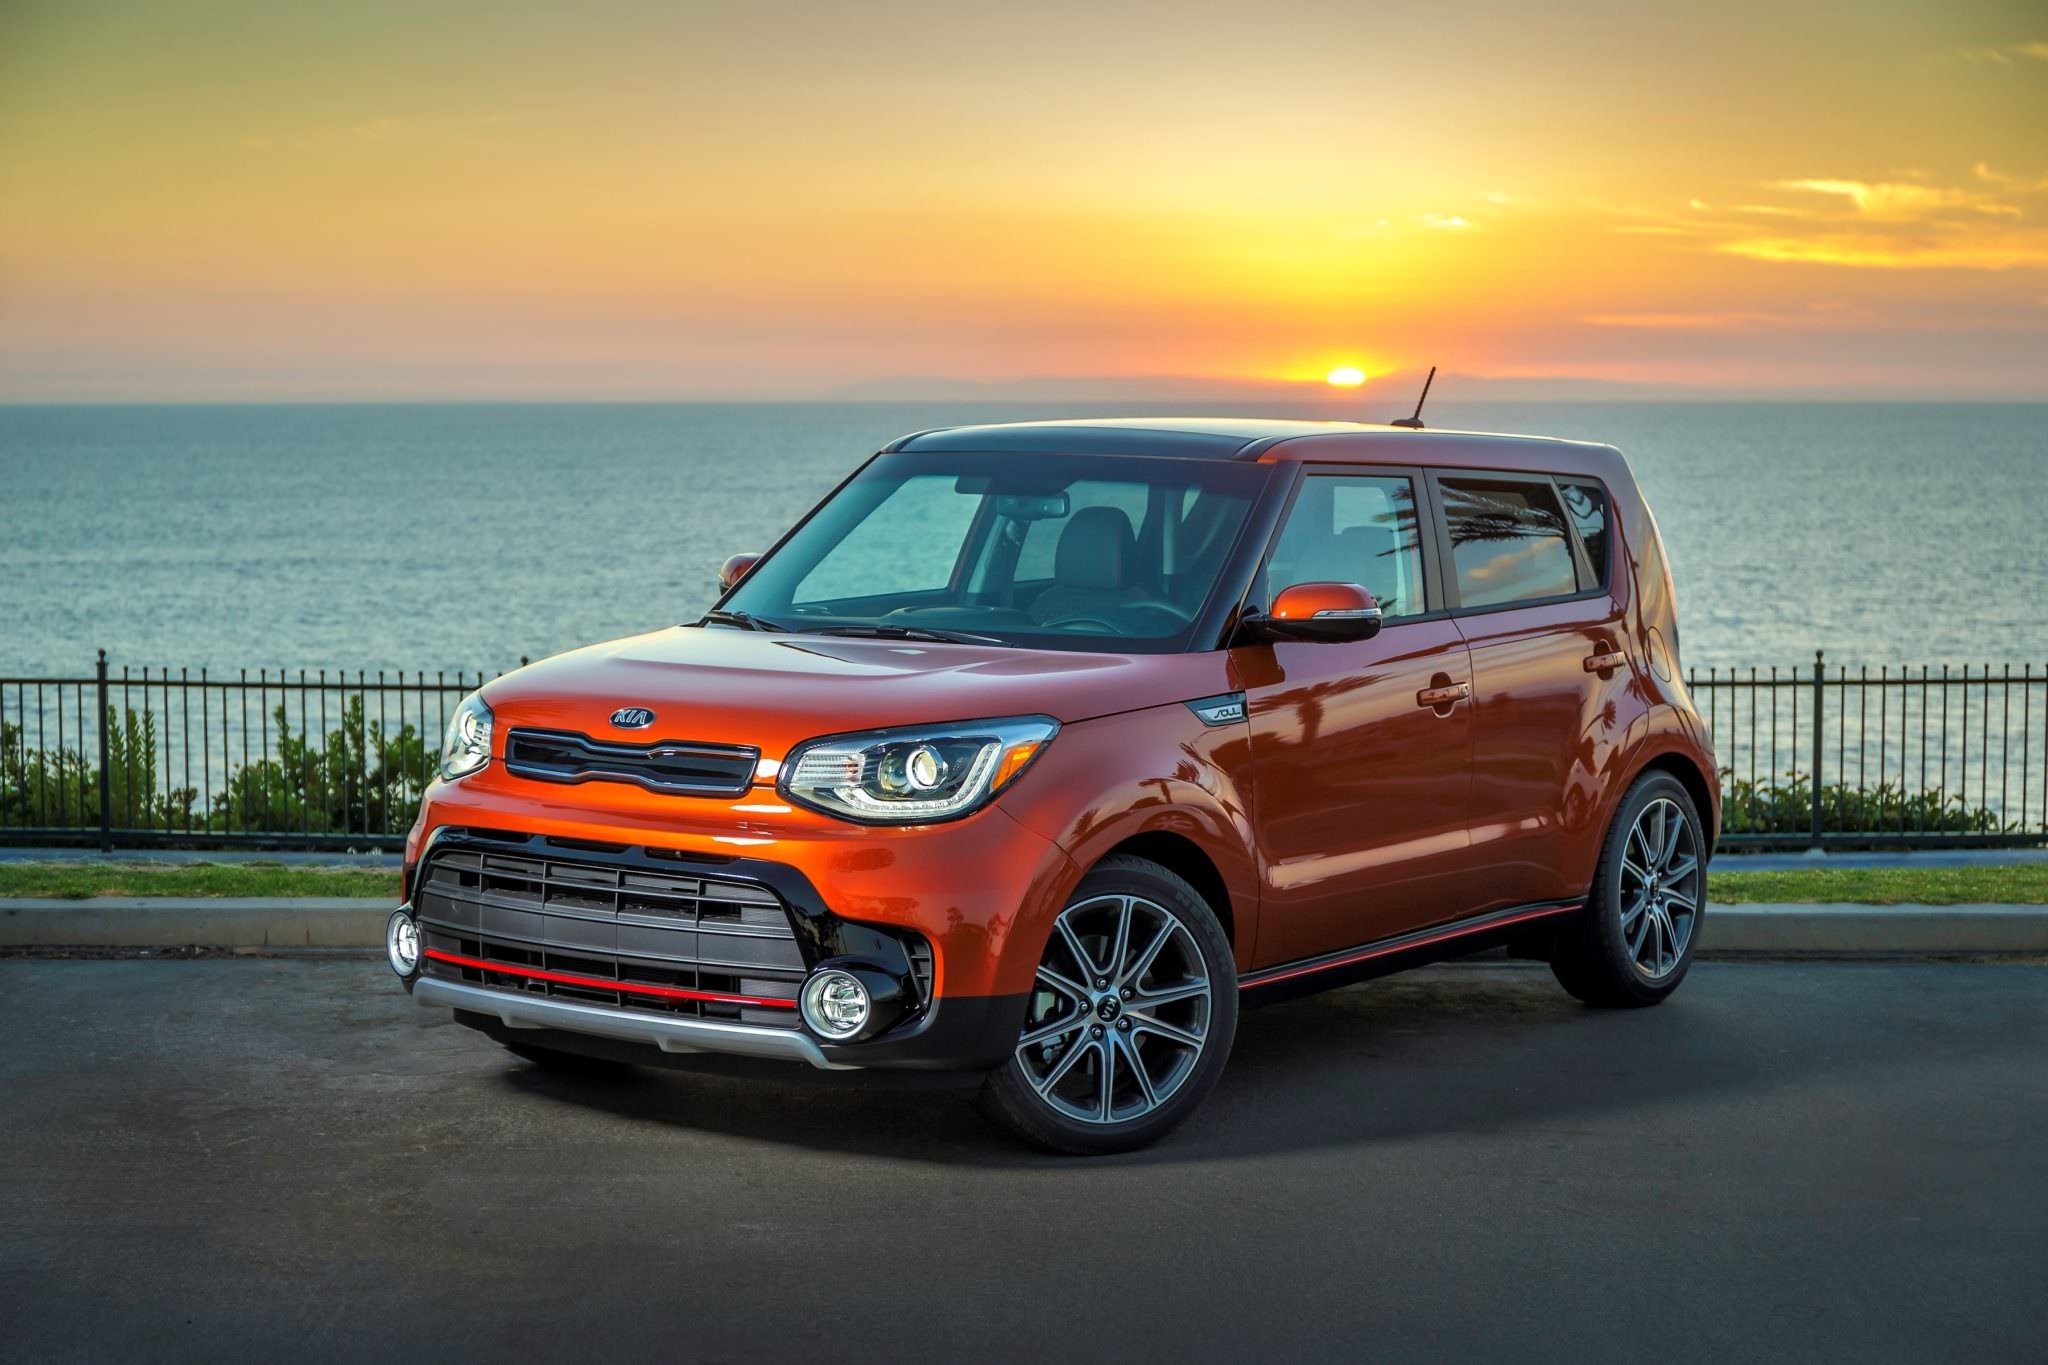 with souls drag a kia touchscreen the isnt orig article soul pcworld get that t isn finally we